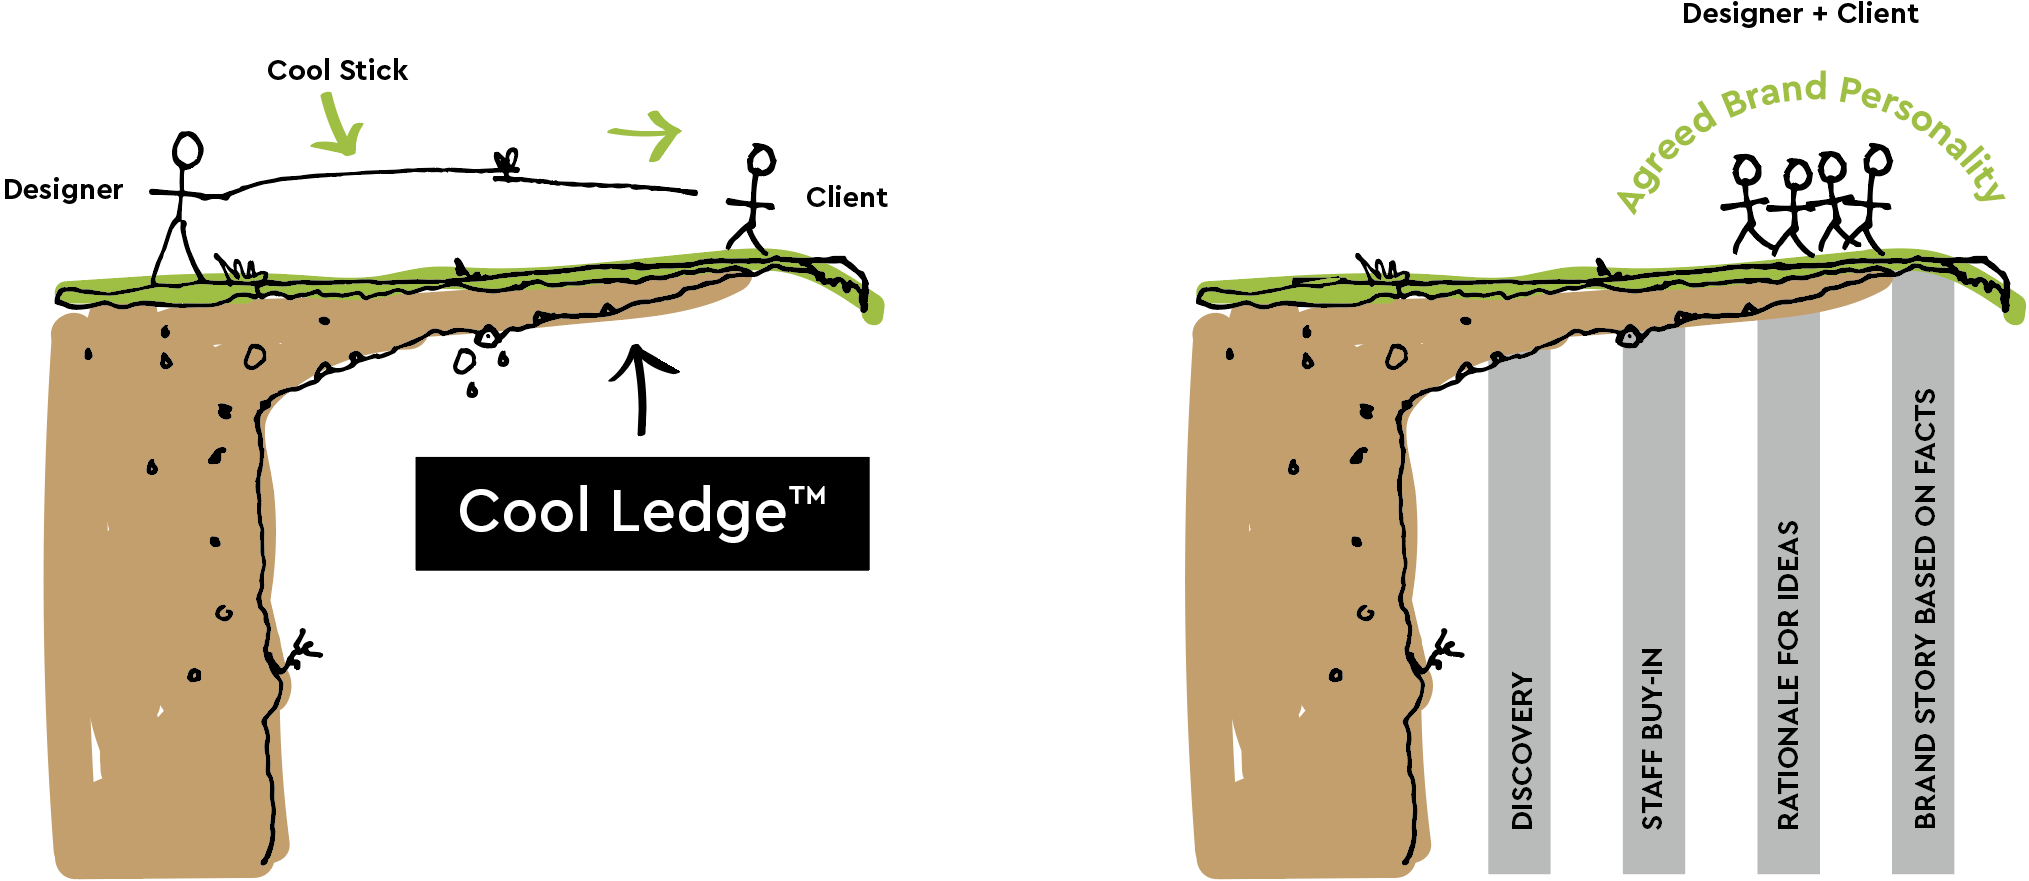 Illustration of the Cool Ledge